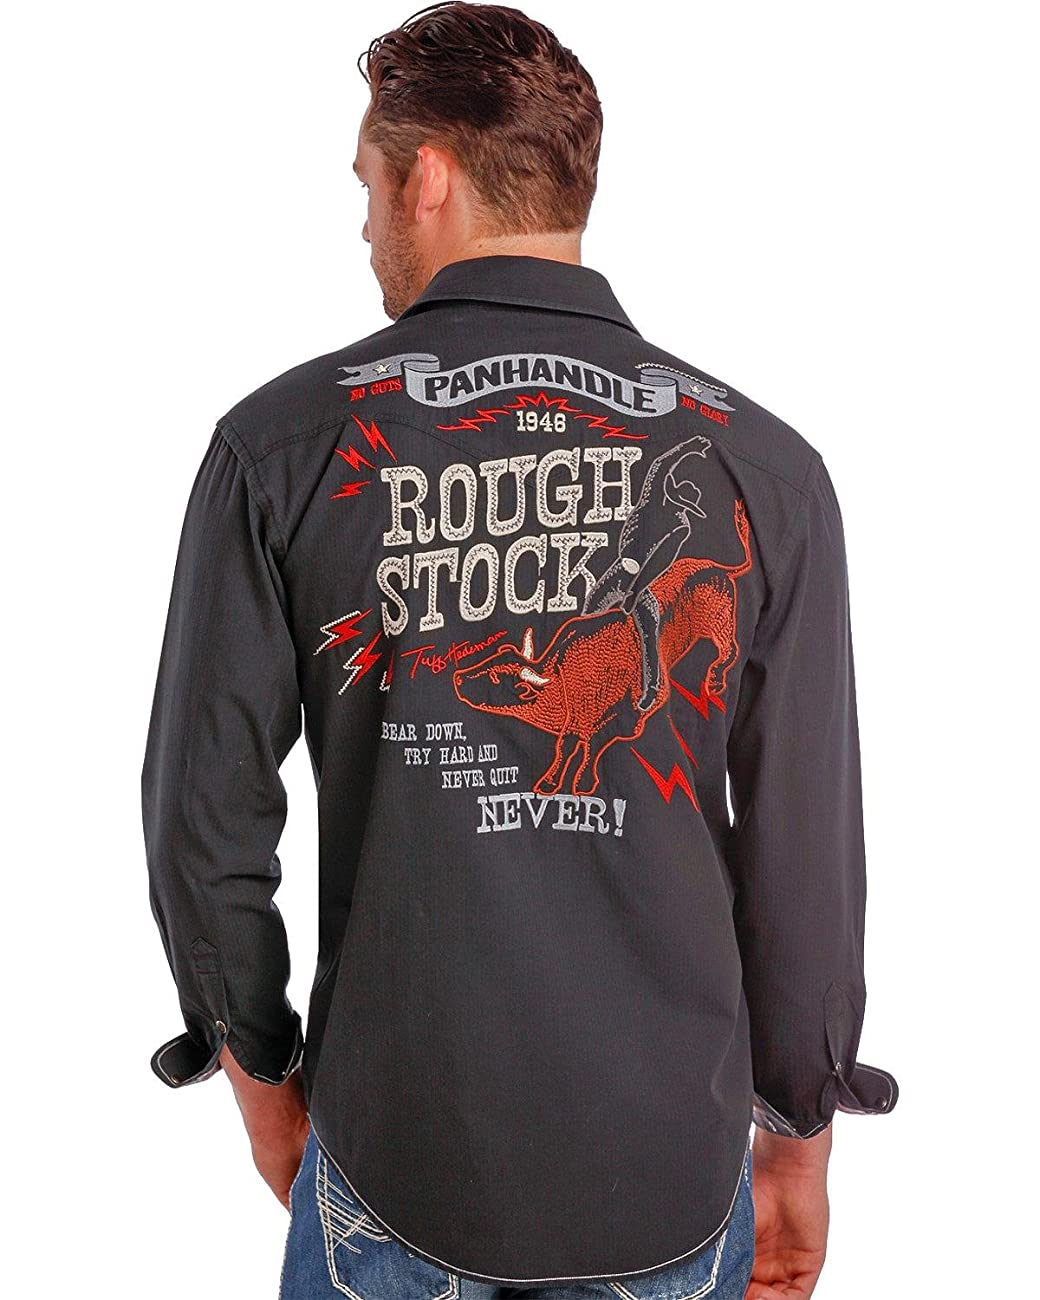 Panhandle Slim Men's Rough Stock By Vintage Bull Rider Logo Western Shirt - R0f9267-01 0